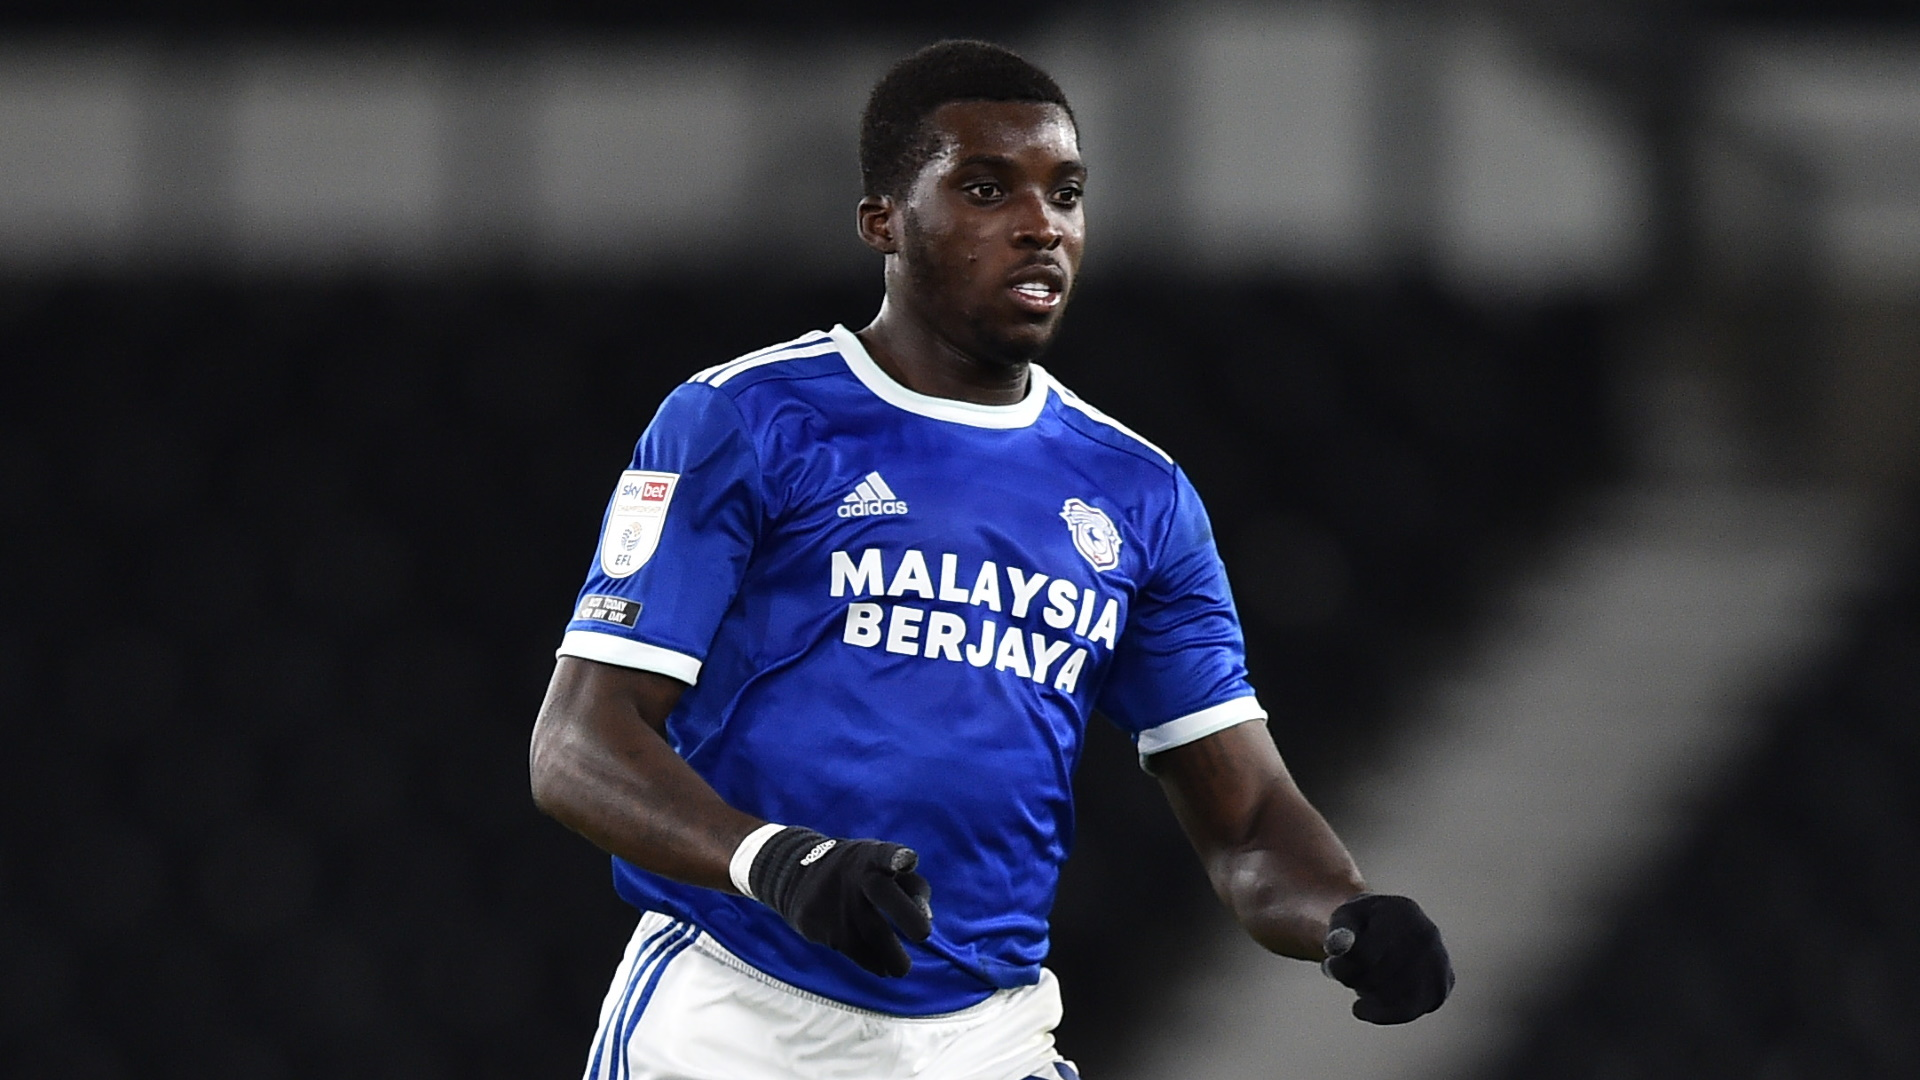 Sheyi Ojo scores as Cardiff City hold Barnsley